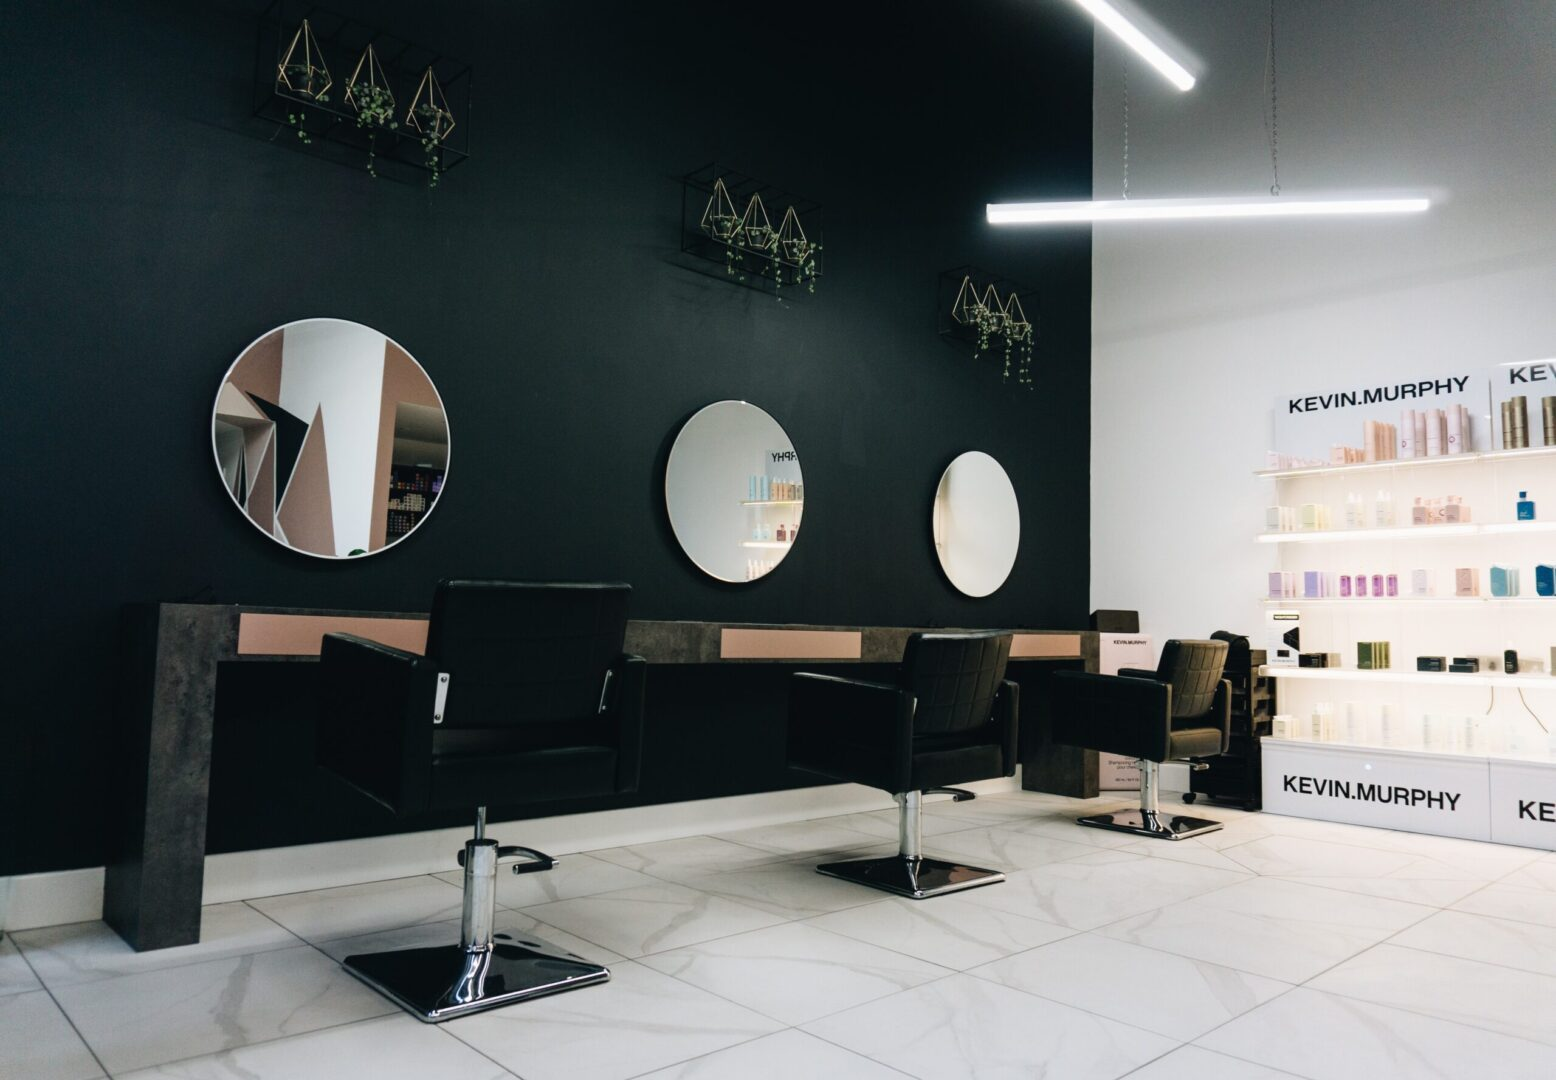 inside of a hair salon, chairs lined up in a row infront of mirrors